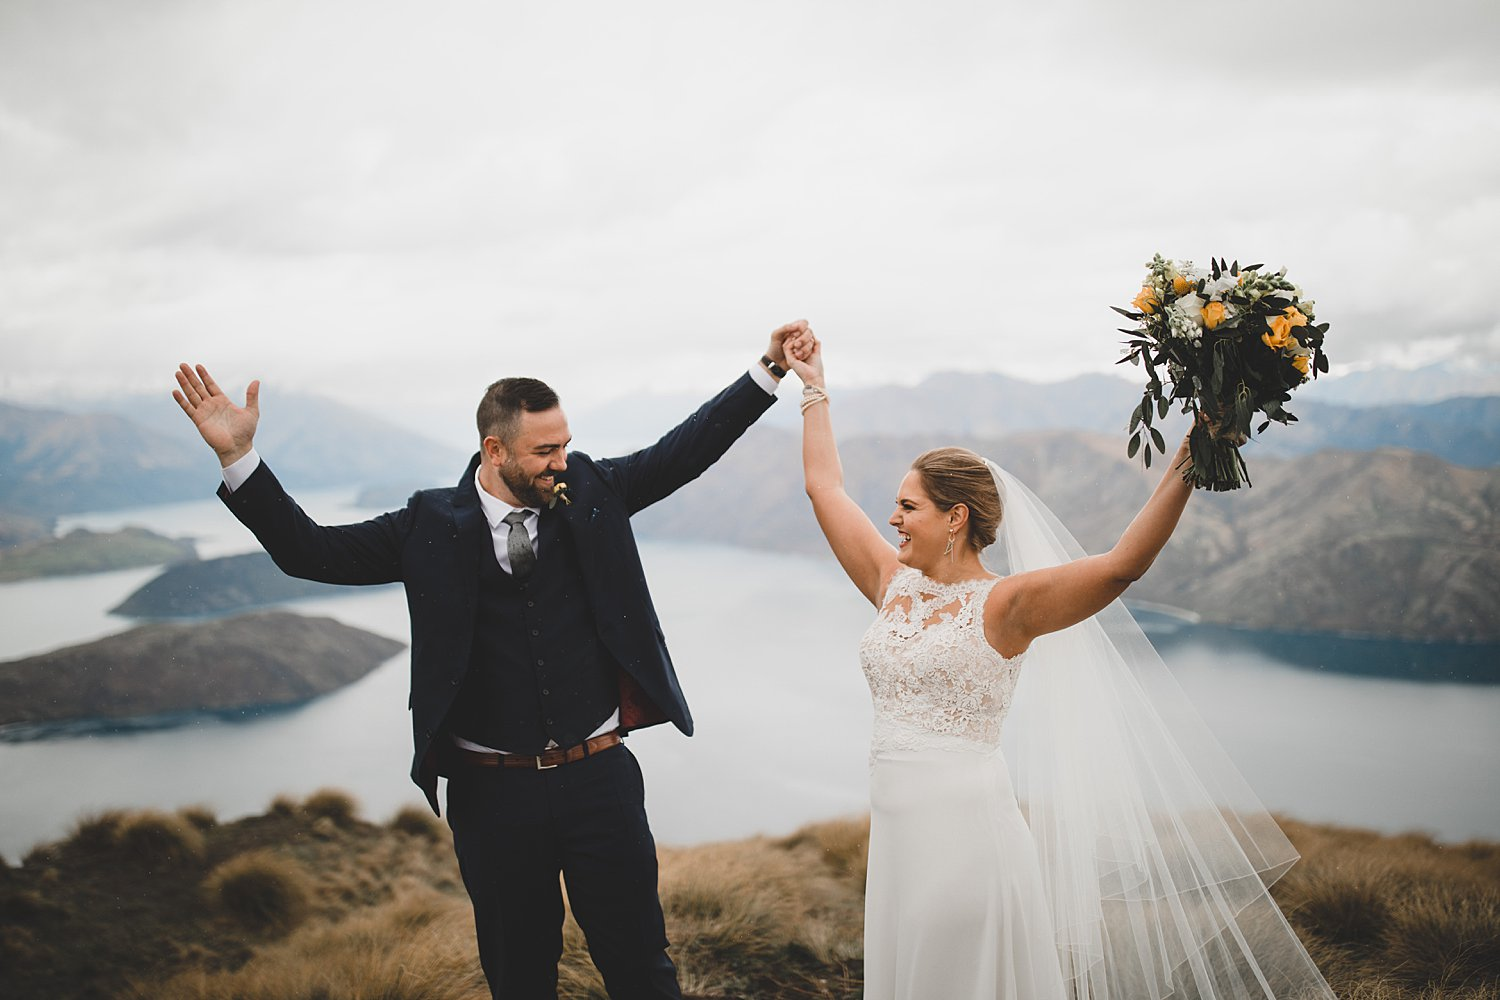 Roys Peak Mountain Weddinga